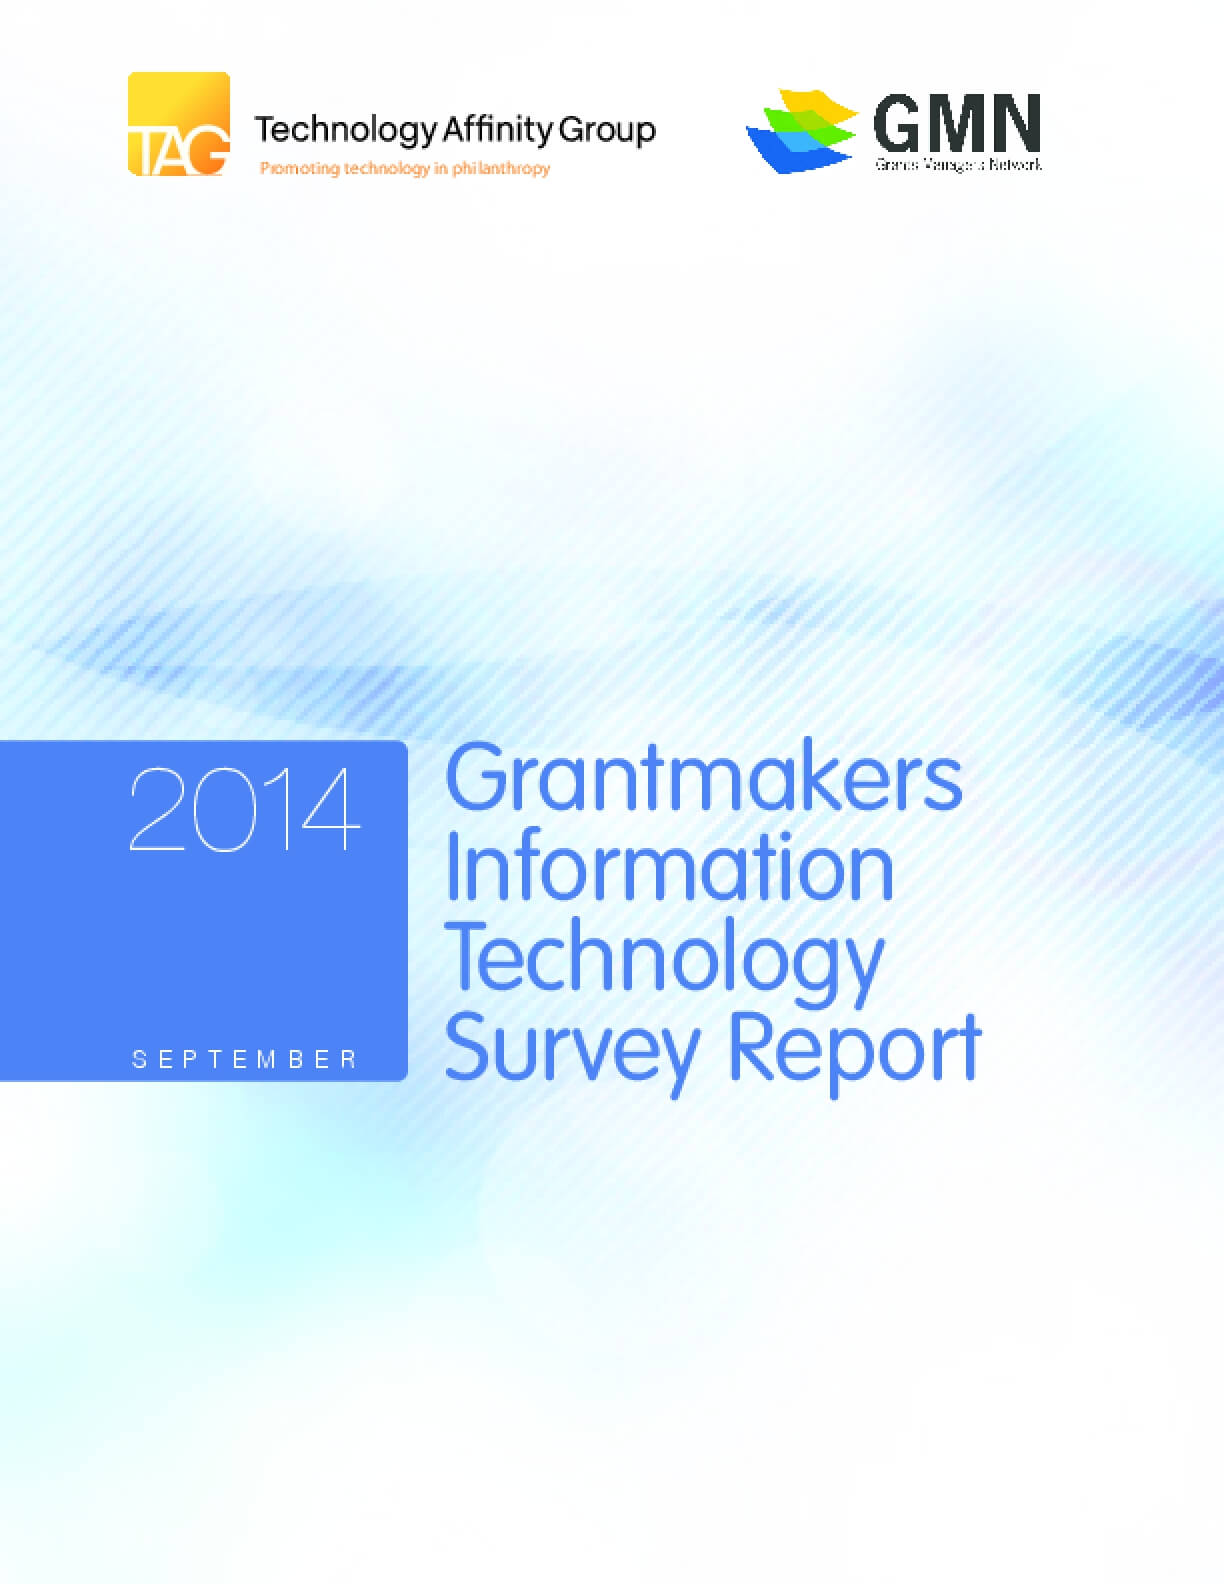 2014 Grantmakers Information Technology Survey Report